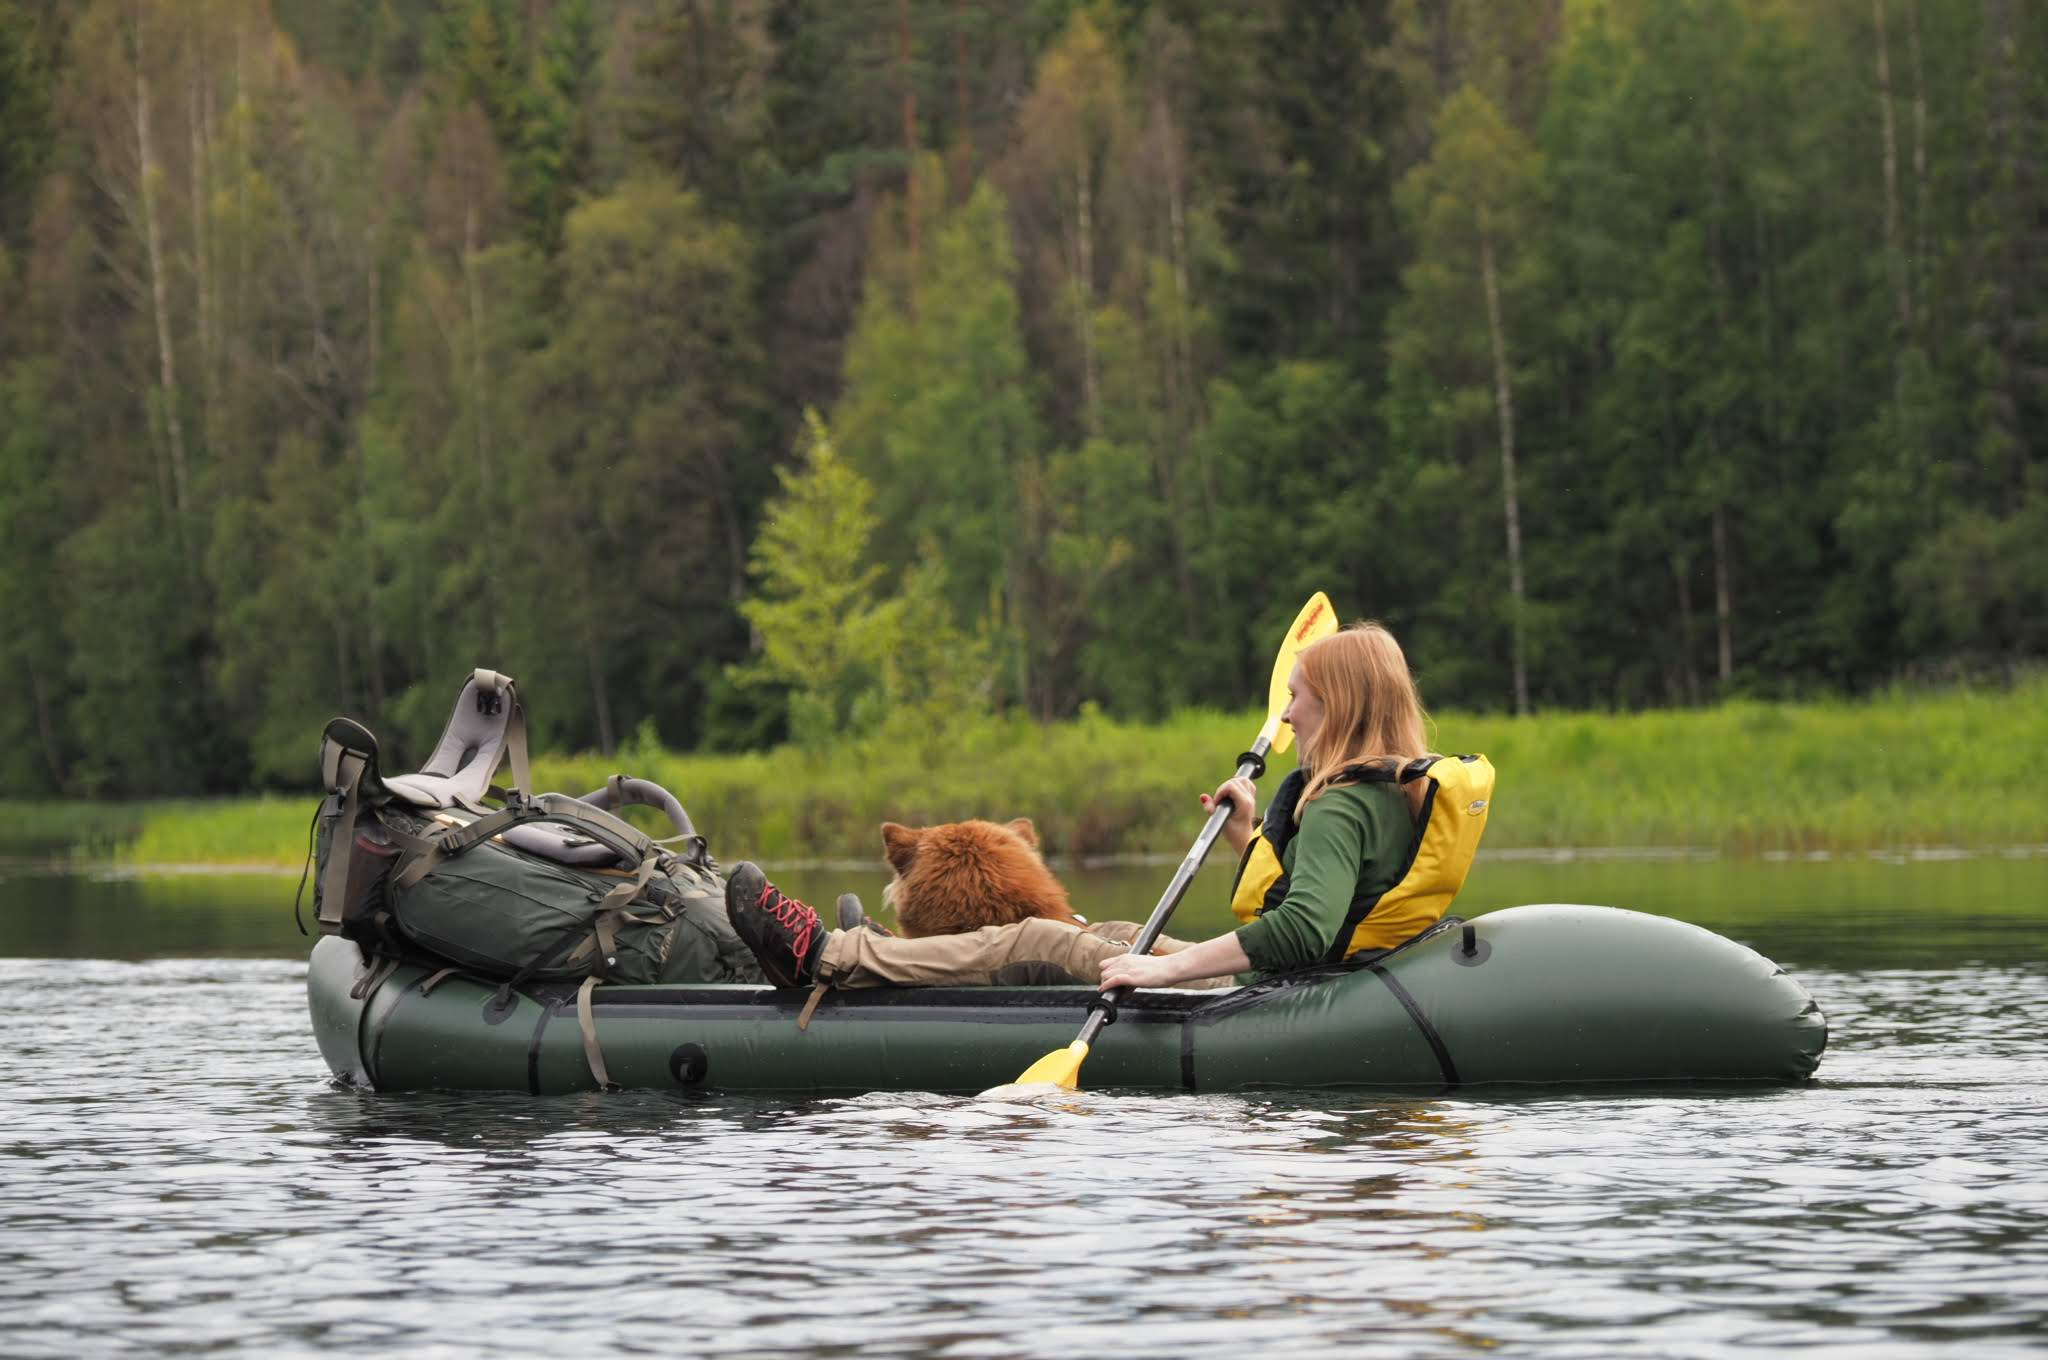 On Packraft expedition (Photo: Sigurd Stubberud)